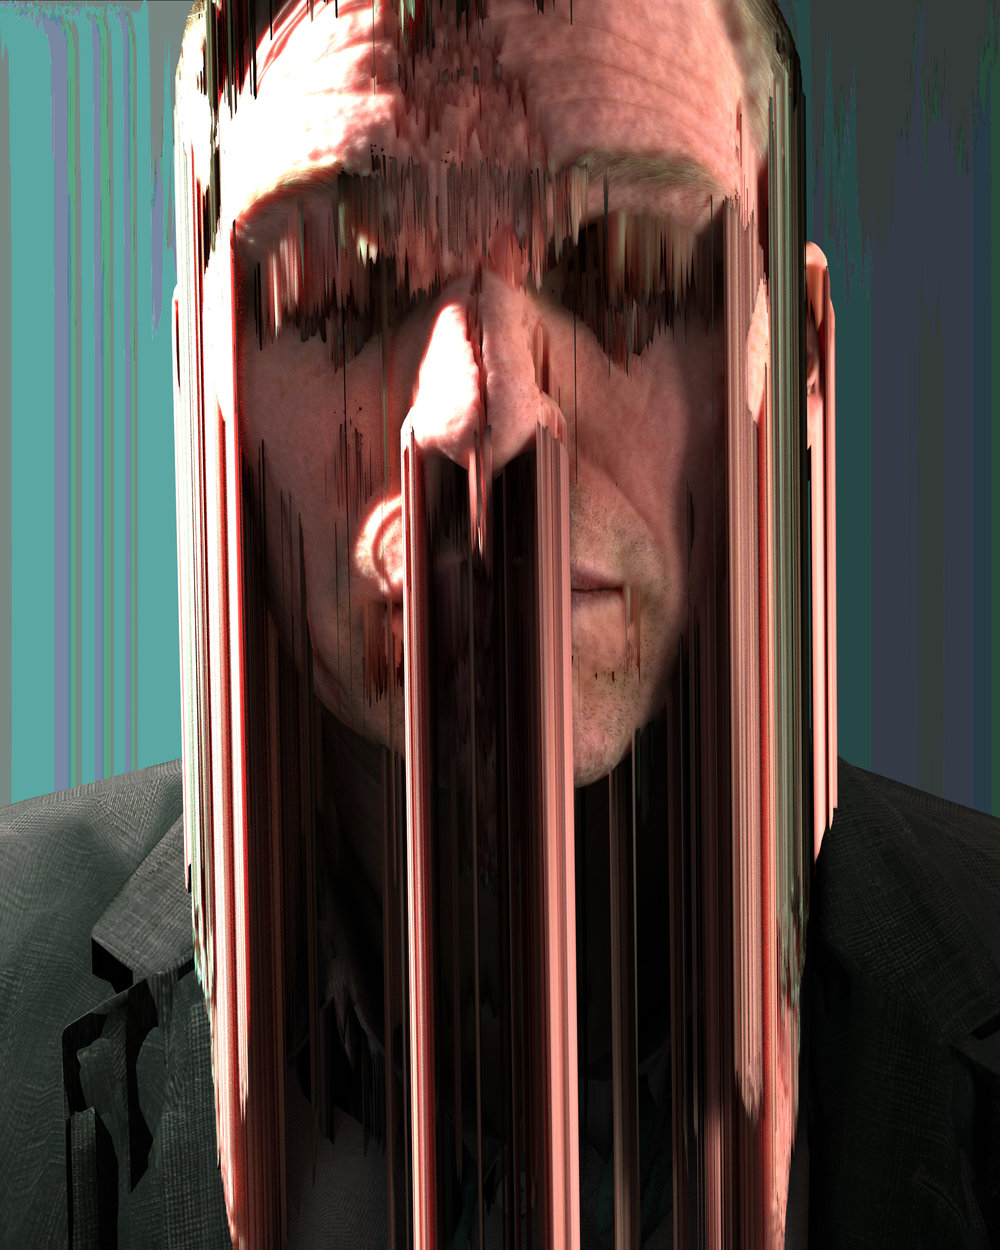 peder_glitch11_big2.jpg